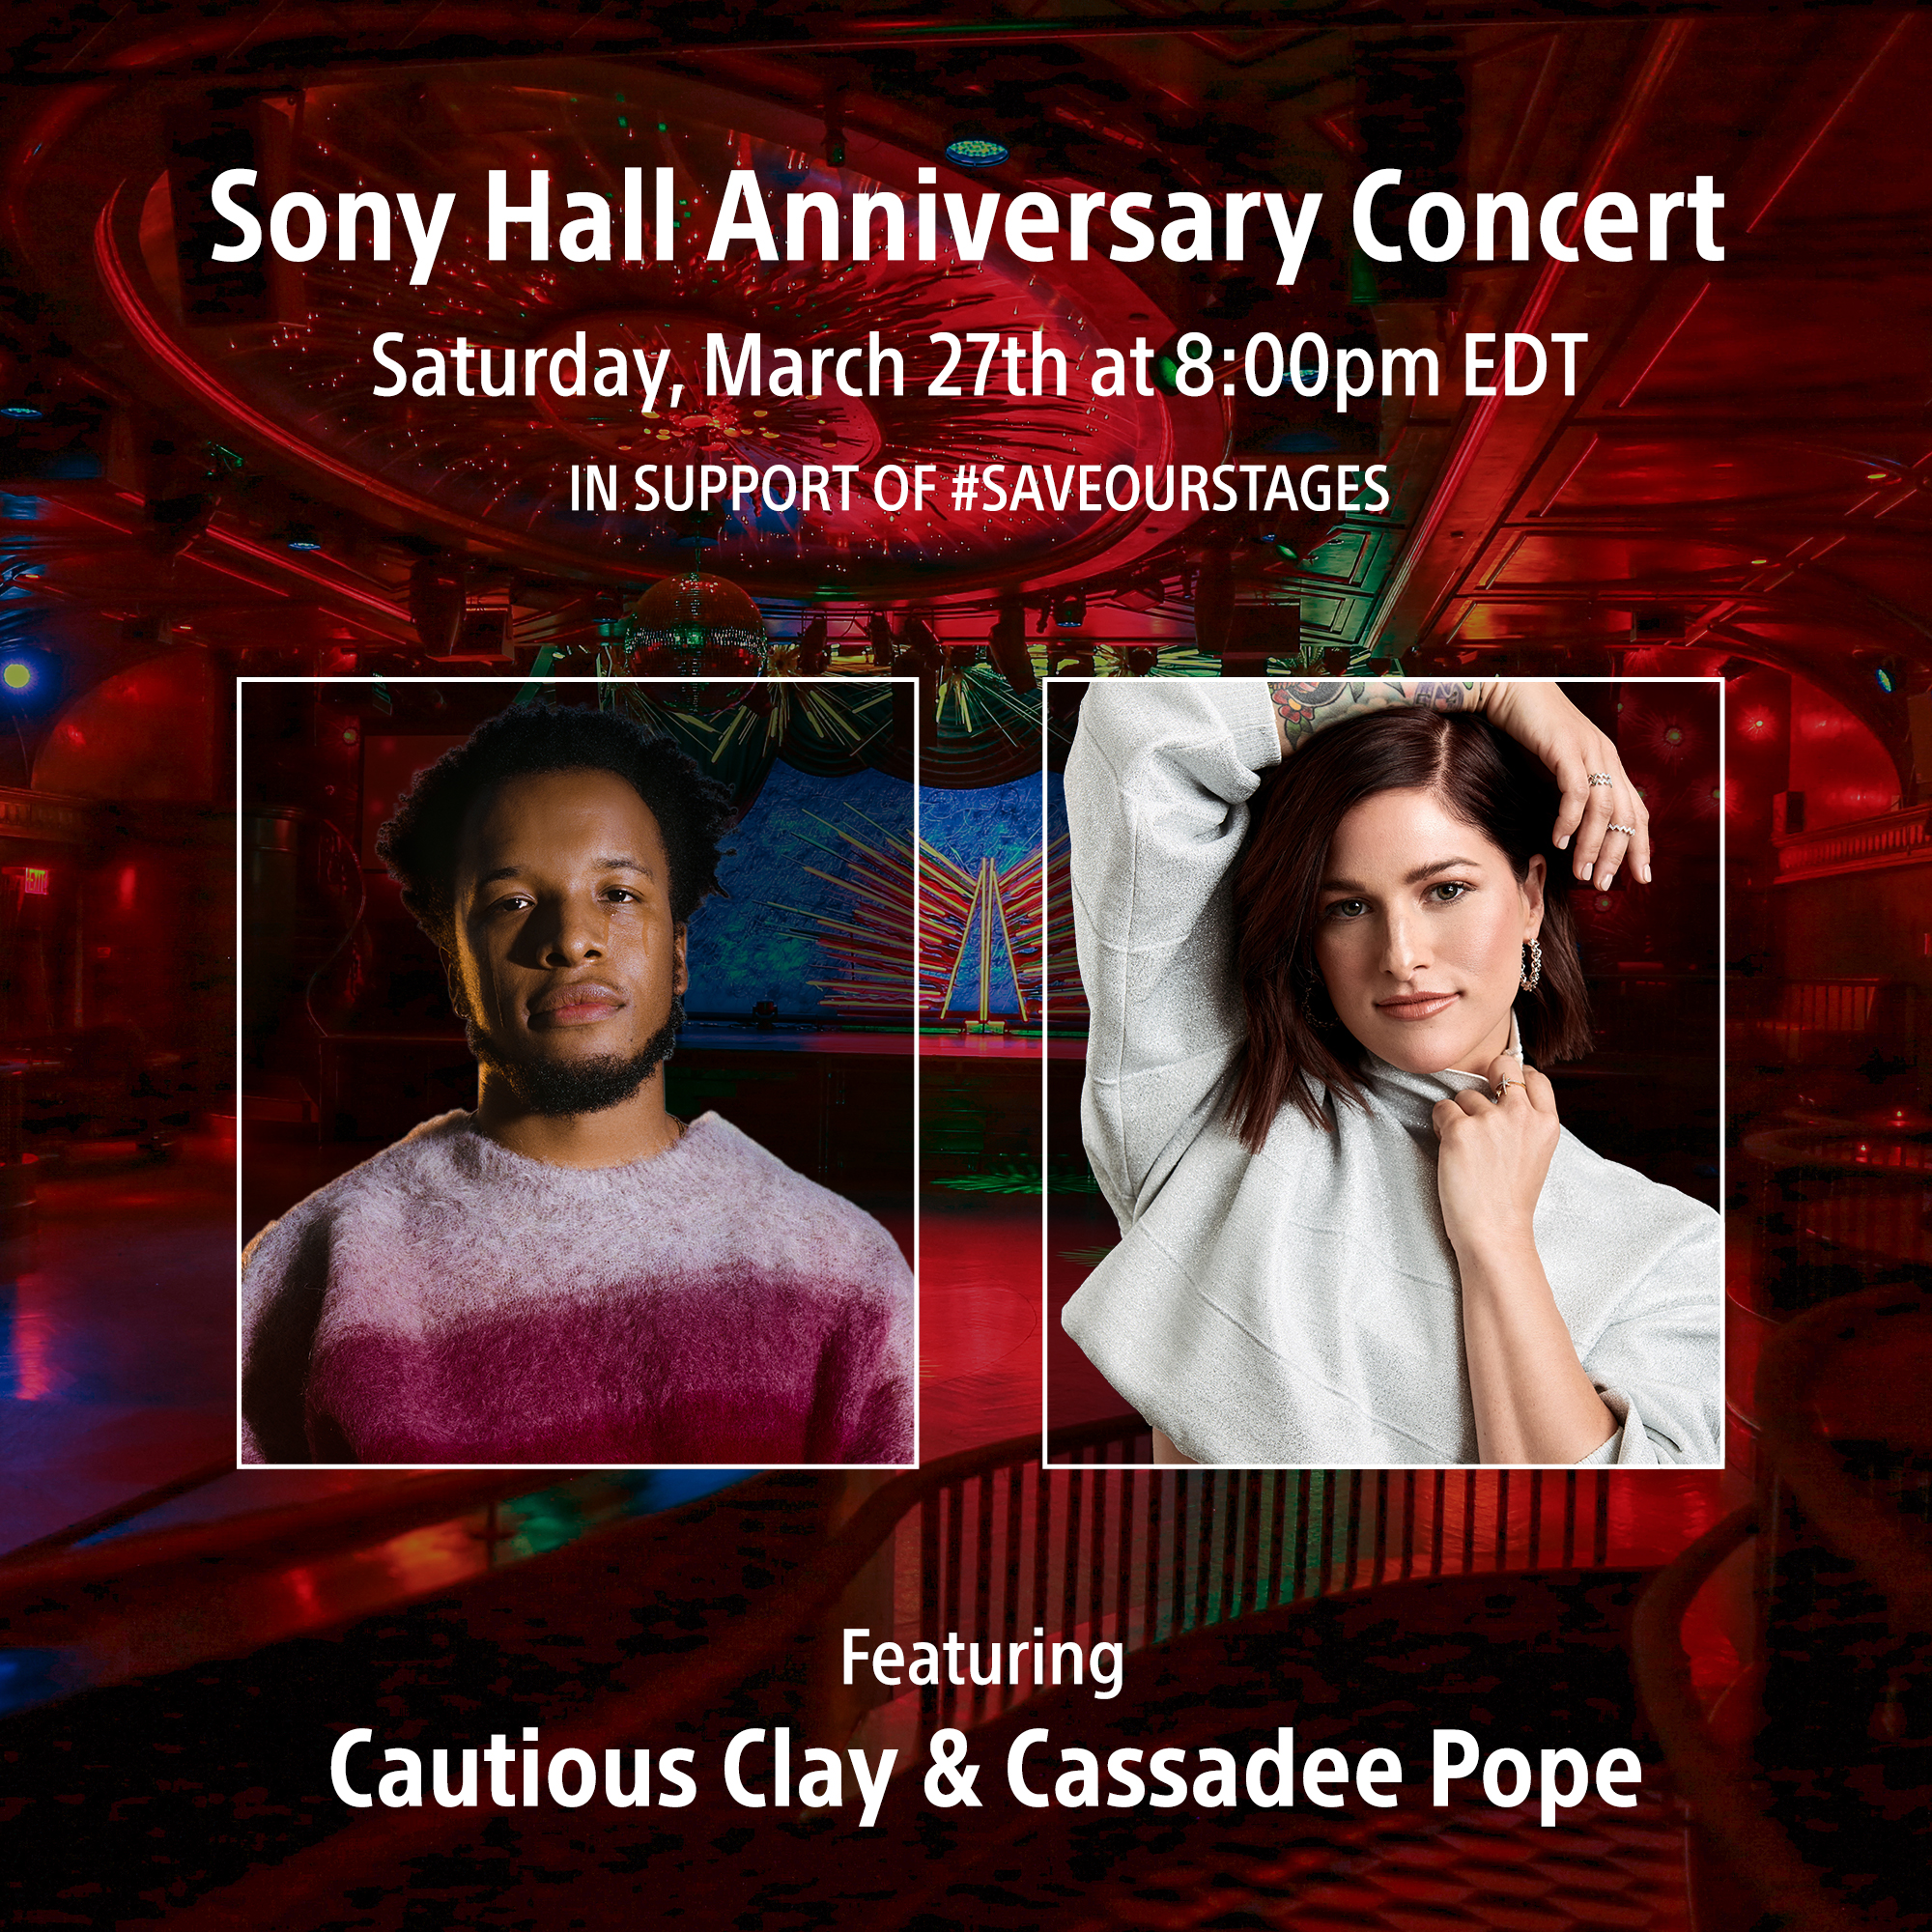 Sony Hall Hosting 3rd Anniversary Concert Stream to Support #SAVEOURSTAGES